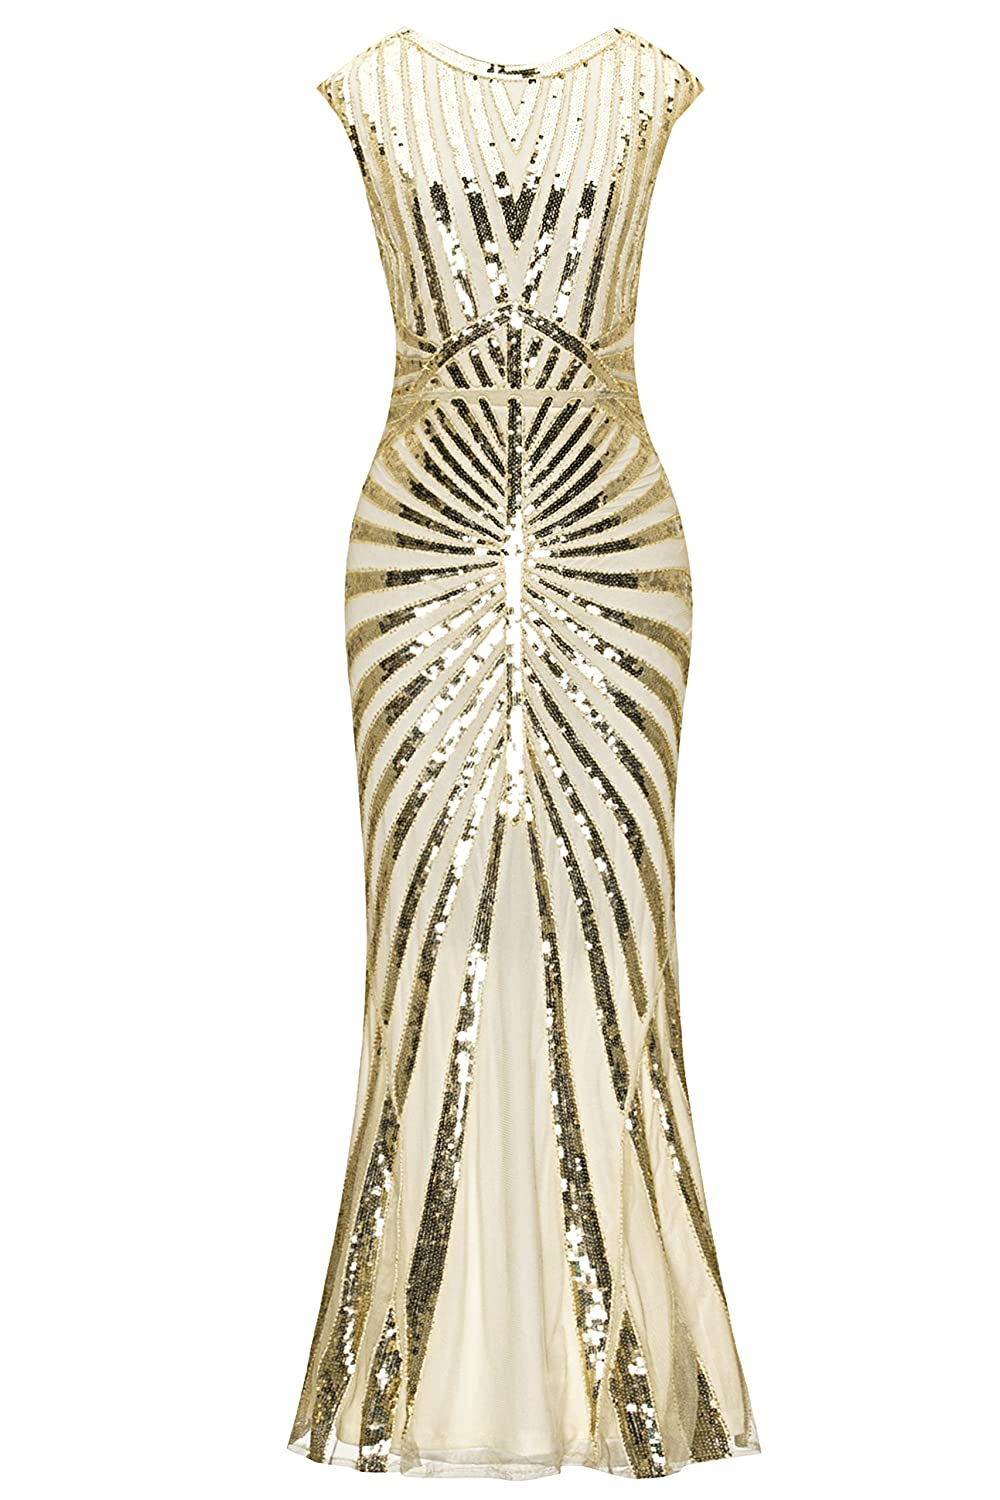 1920s Costumes: Flapper, Great Gatsby, Gangster Girl Metme Formal Evening Dress 1920s Sequin Mermaid Formal Long Flapper Gown Party $54.99 AT vintagedancer.com